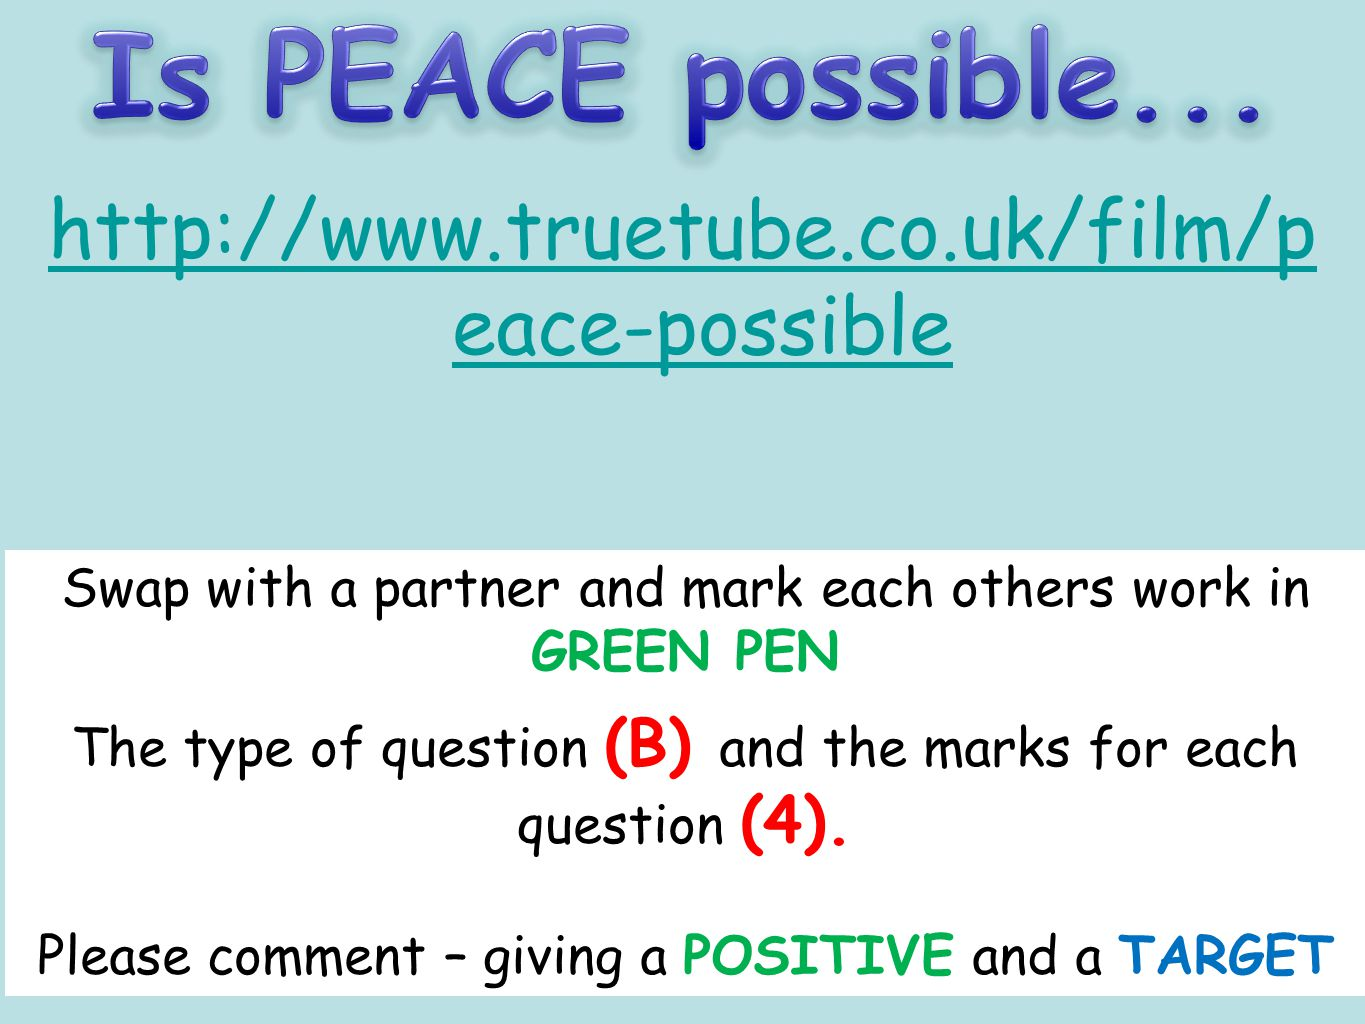 Is PEACE possible... http://www.truetube.co.uk/film/p eace-possible Complete QUESTION 2 page 79 – remember P-E-P-E (B question- 4 MARKS)